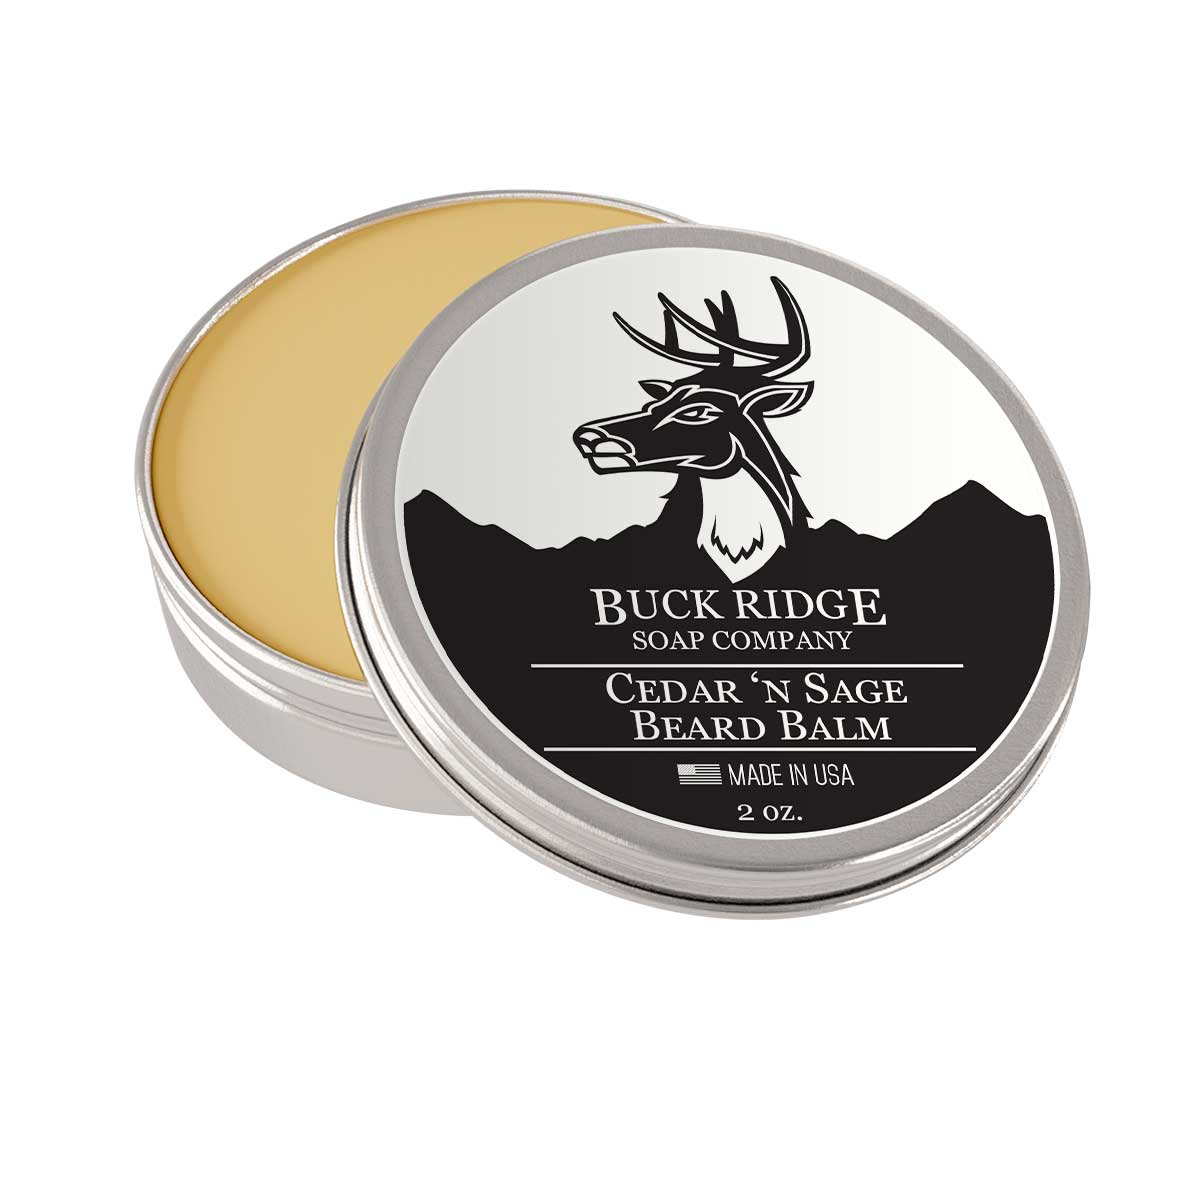 Cedar and Sage Beard Balm - Wands Of Nature